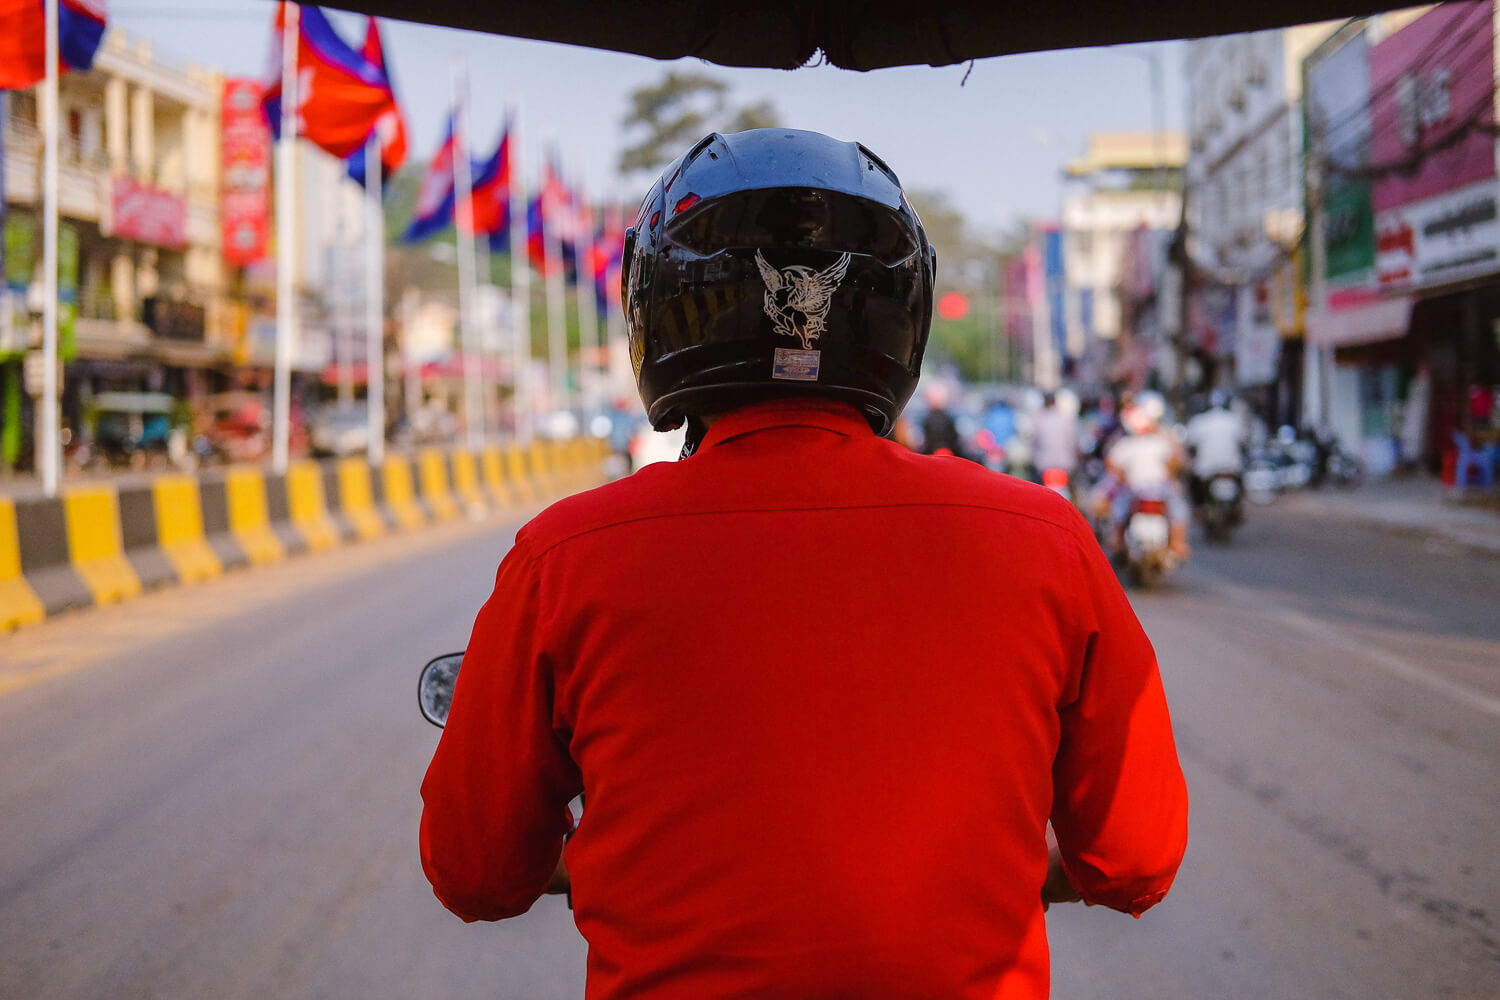 Our guide, Pee, driving through Siem Reap